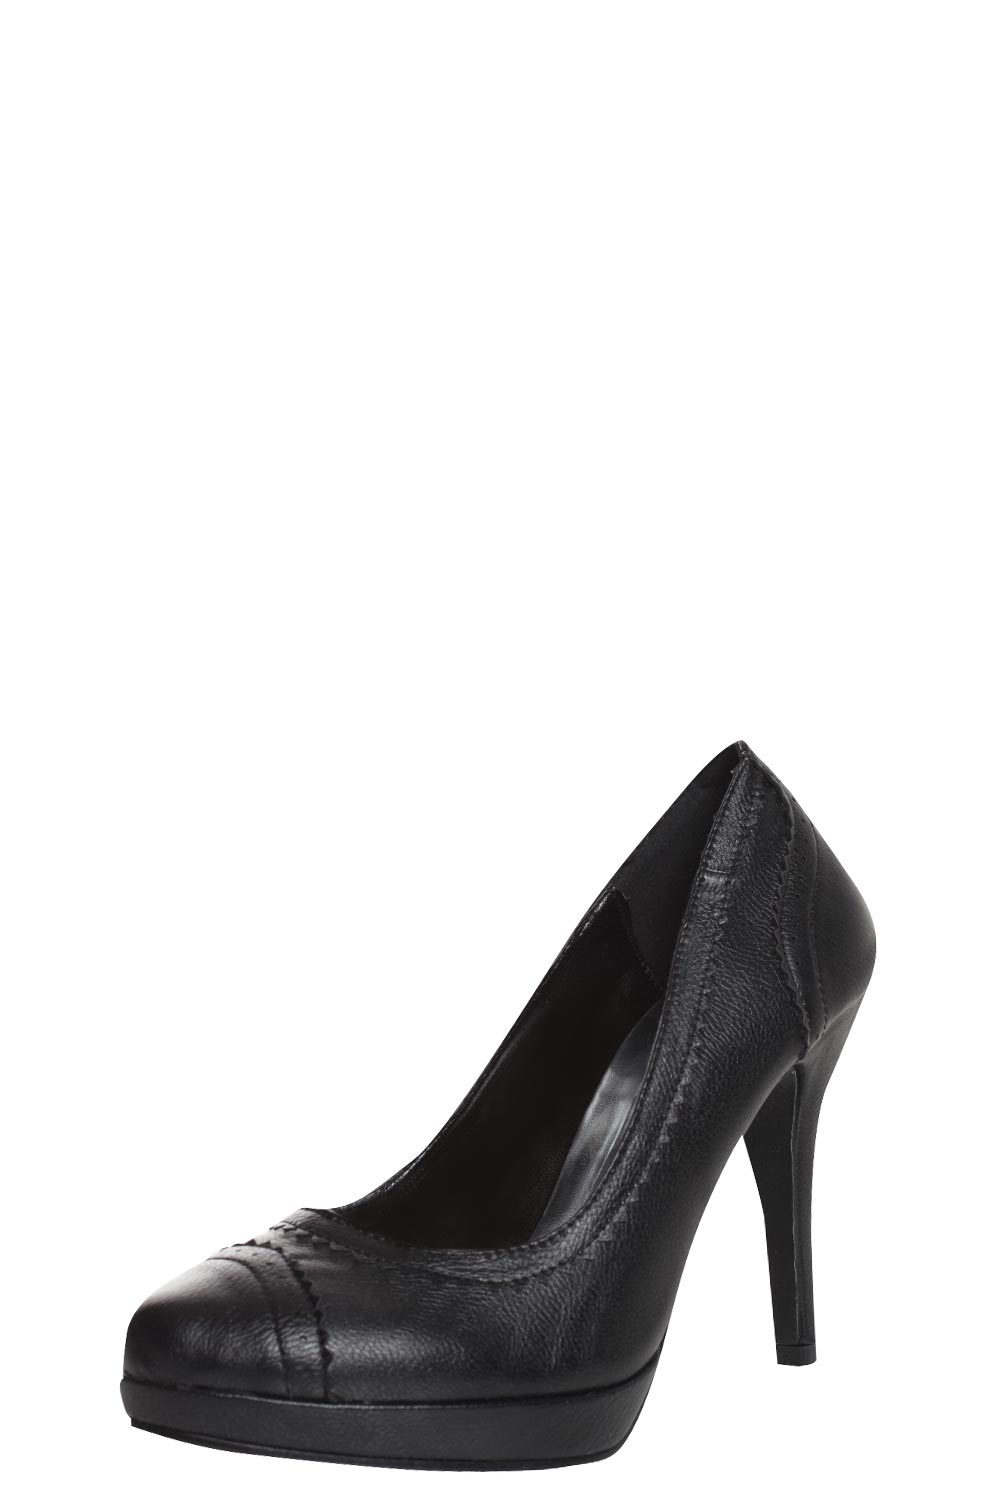 Boohoo-Millie-Punch-Work-Detail-Leather-Look-Court-Heels-in-Black